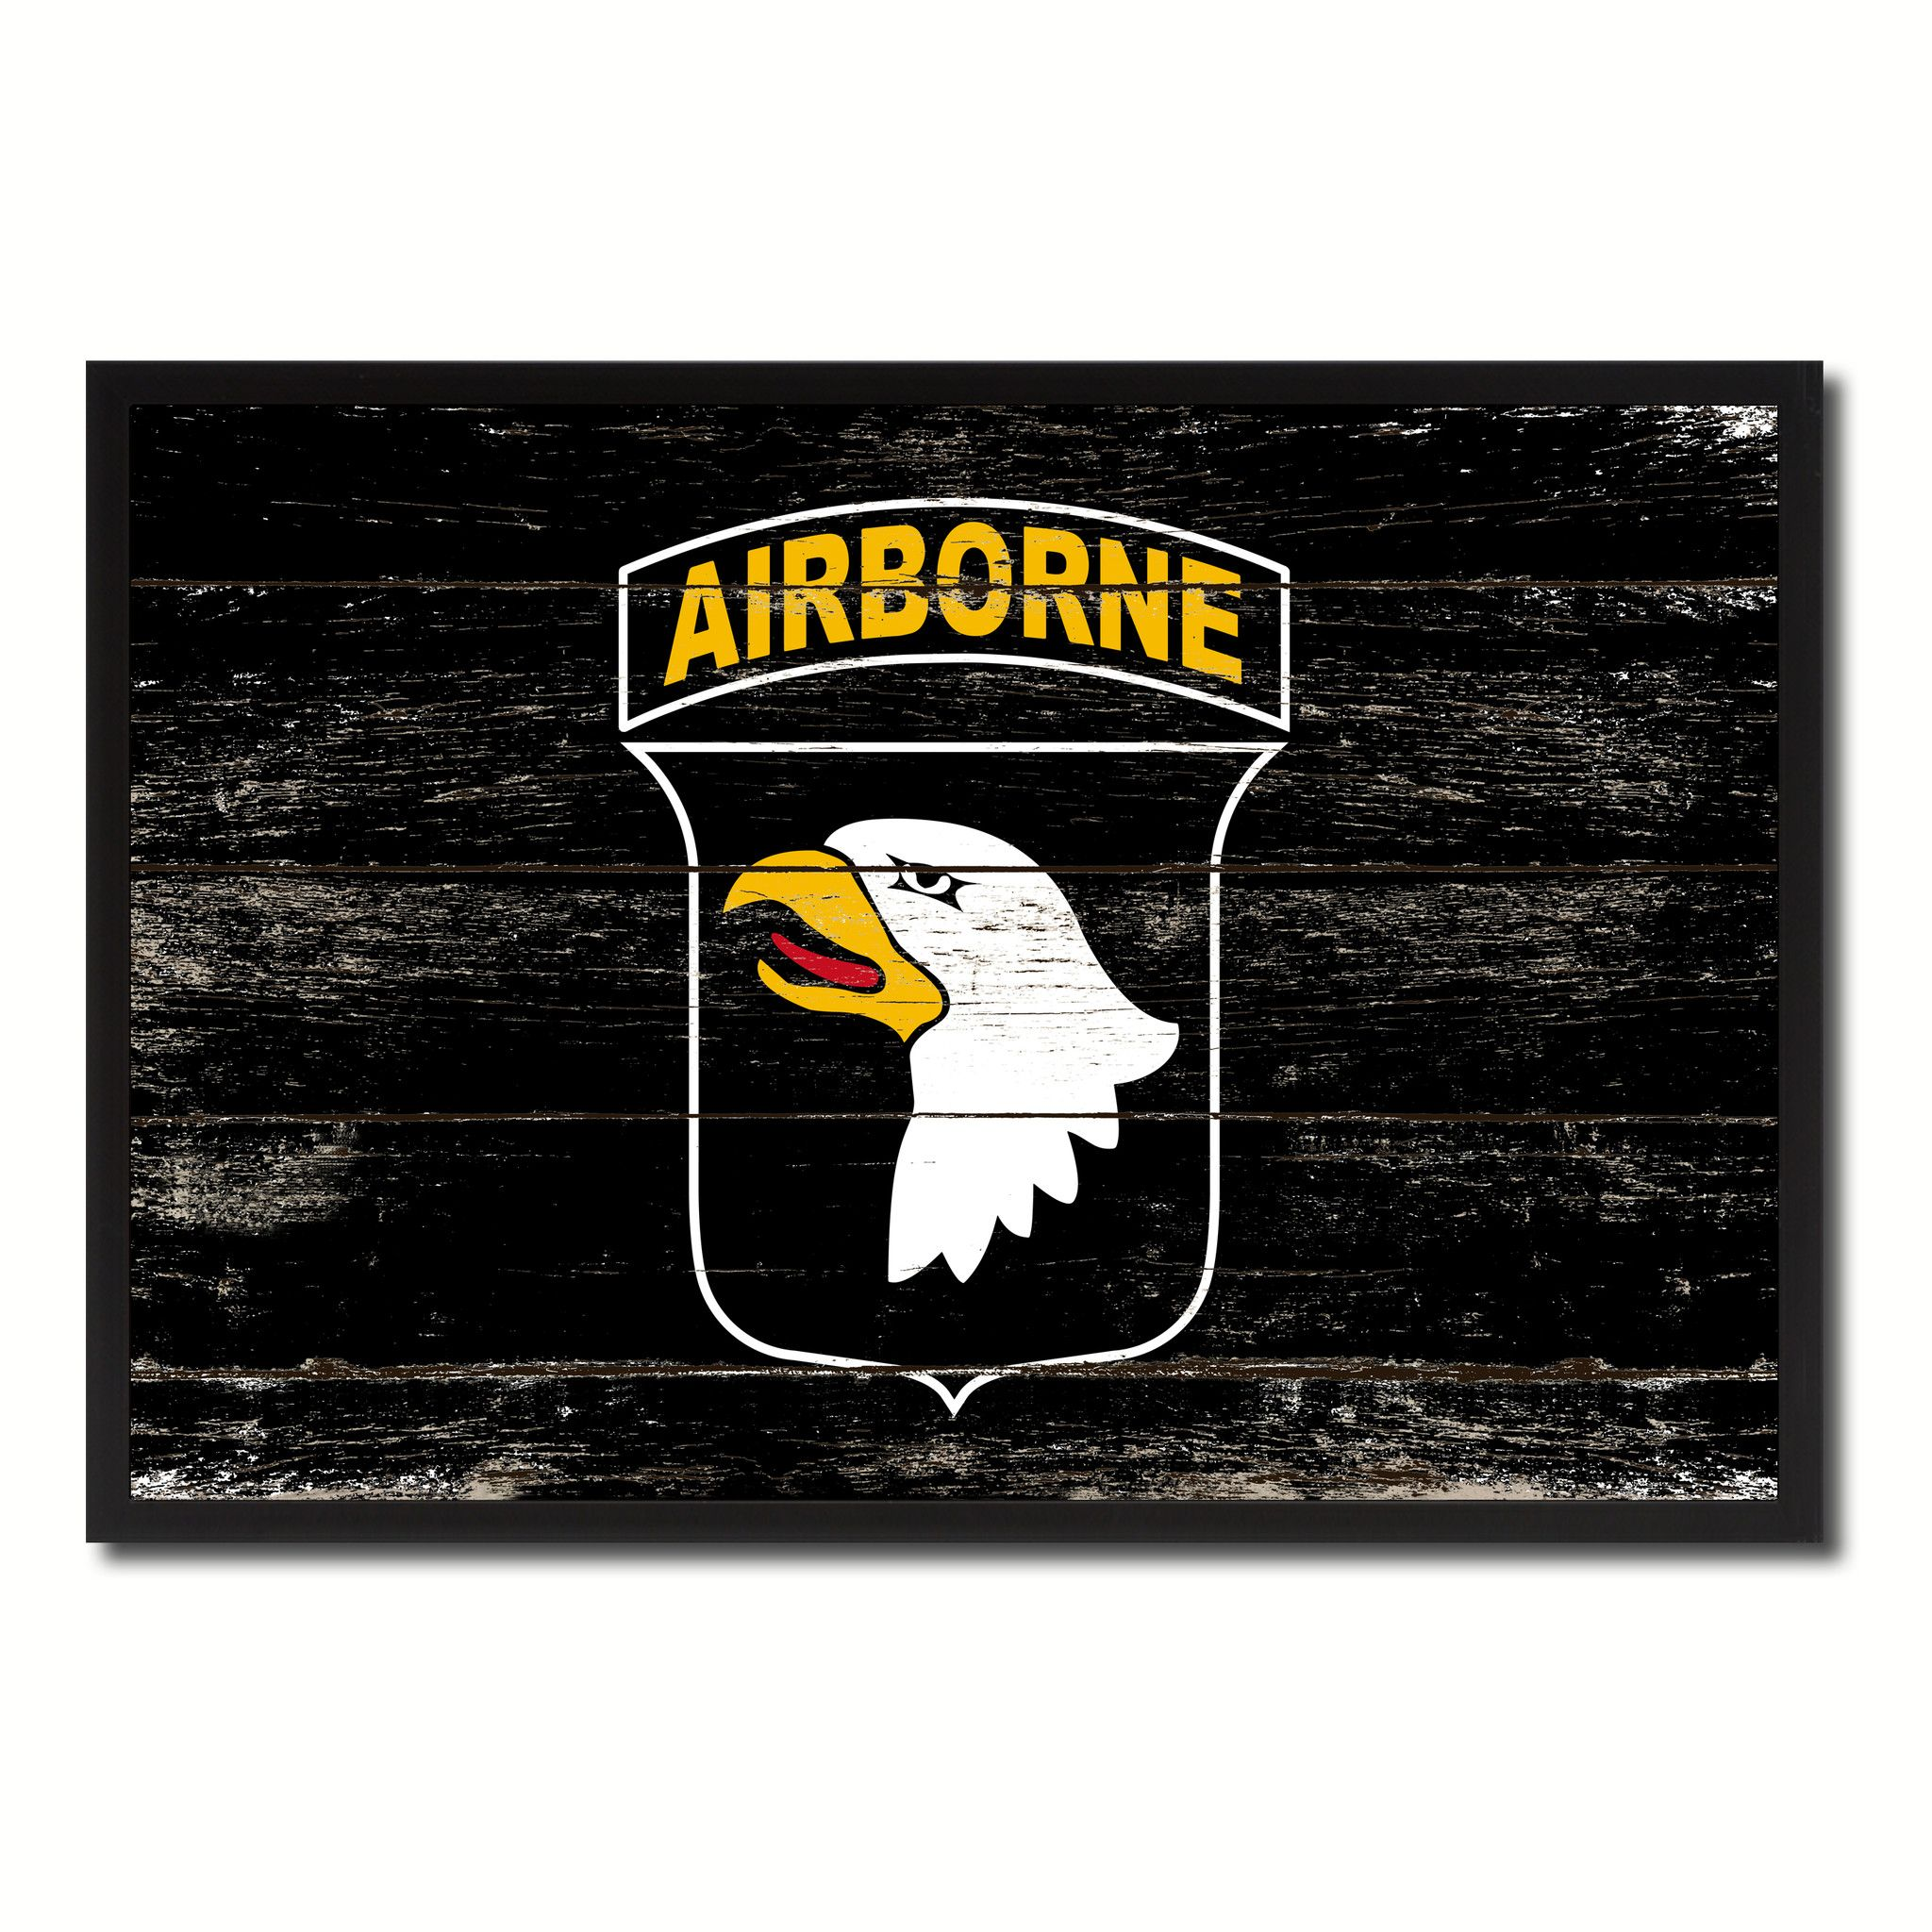 Us army 101st airborne military flag vintage canvas print with us army 101st airborne military flag vintage canvas print with picture frame home decor man cave wall art collectible decoration artwork gifts jeuxipadfo Images